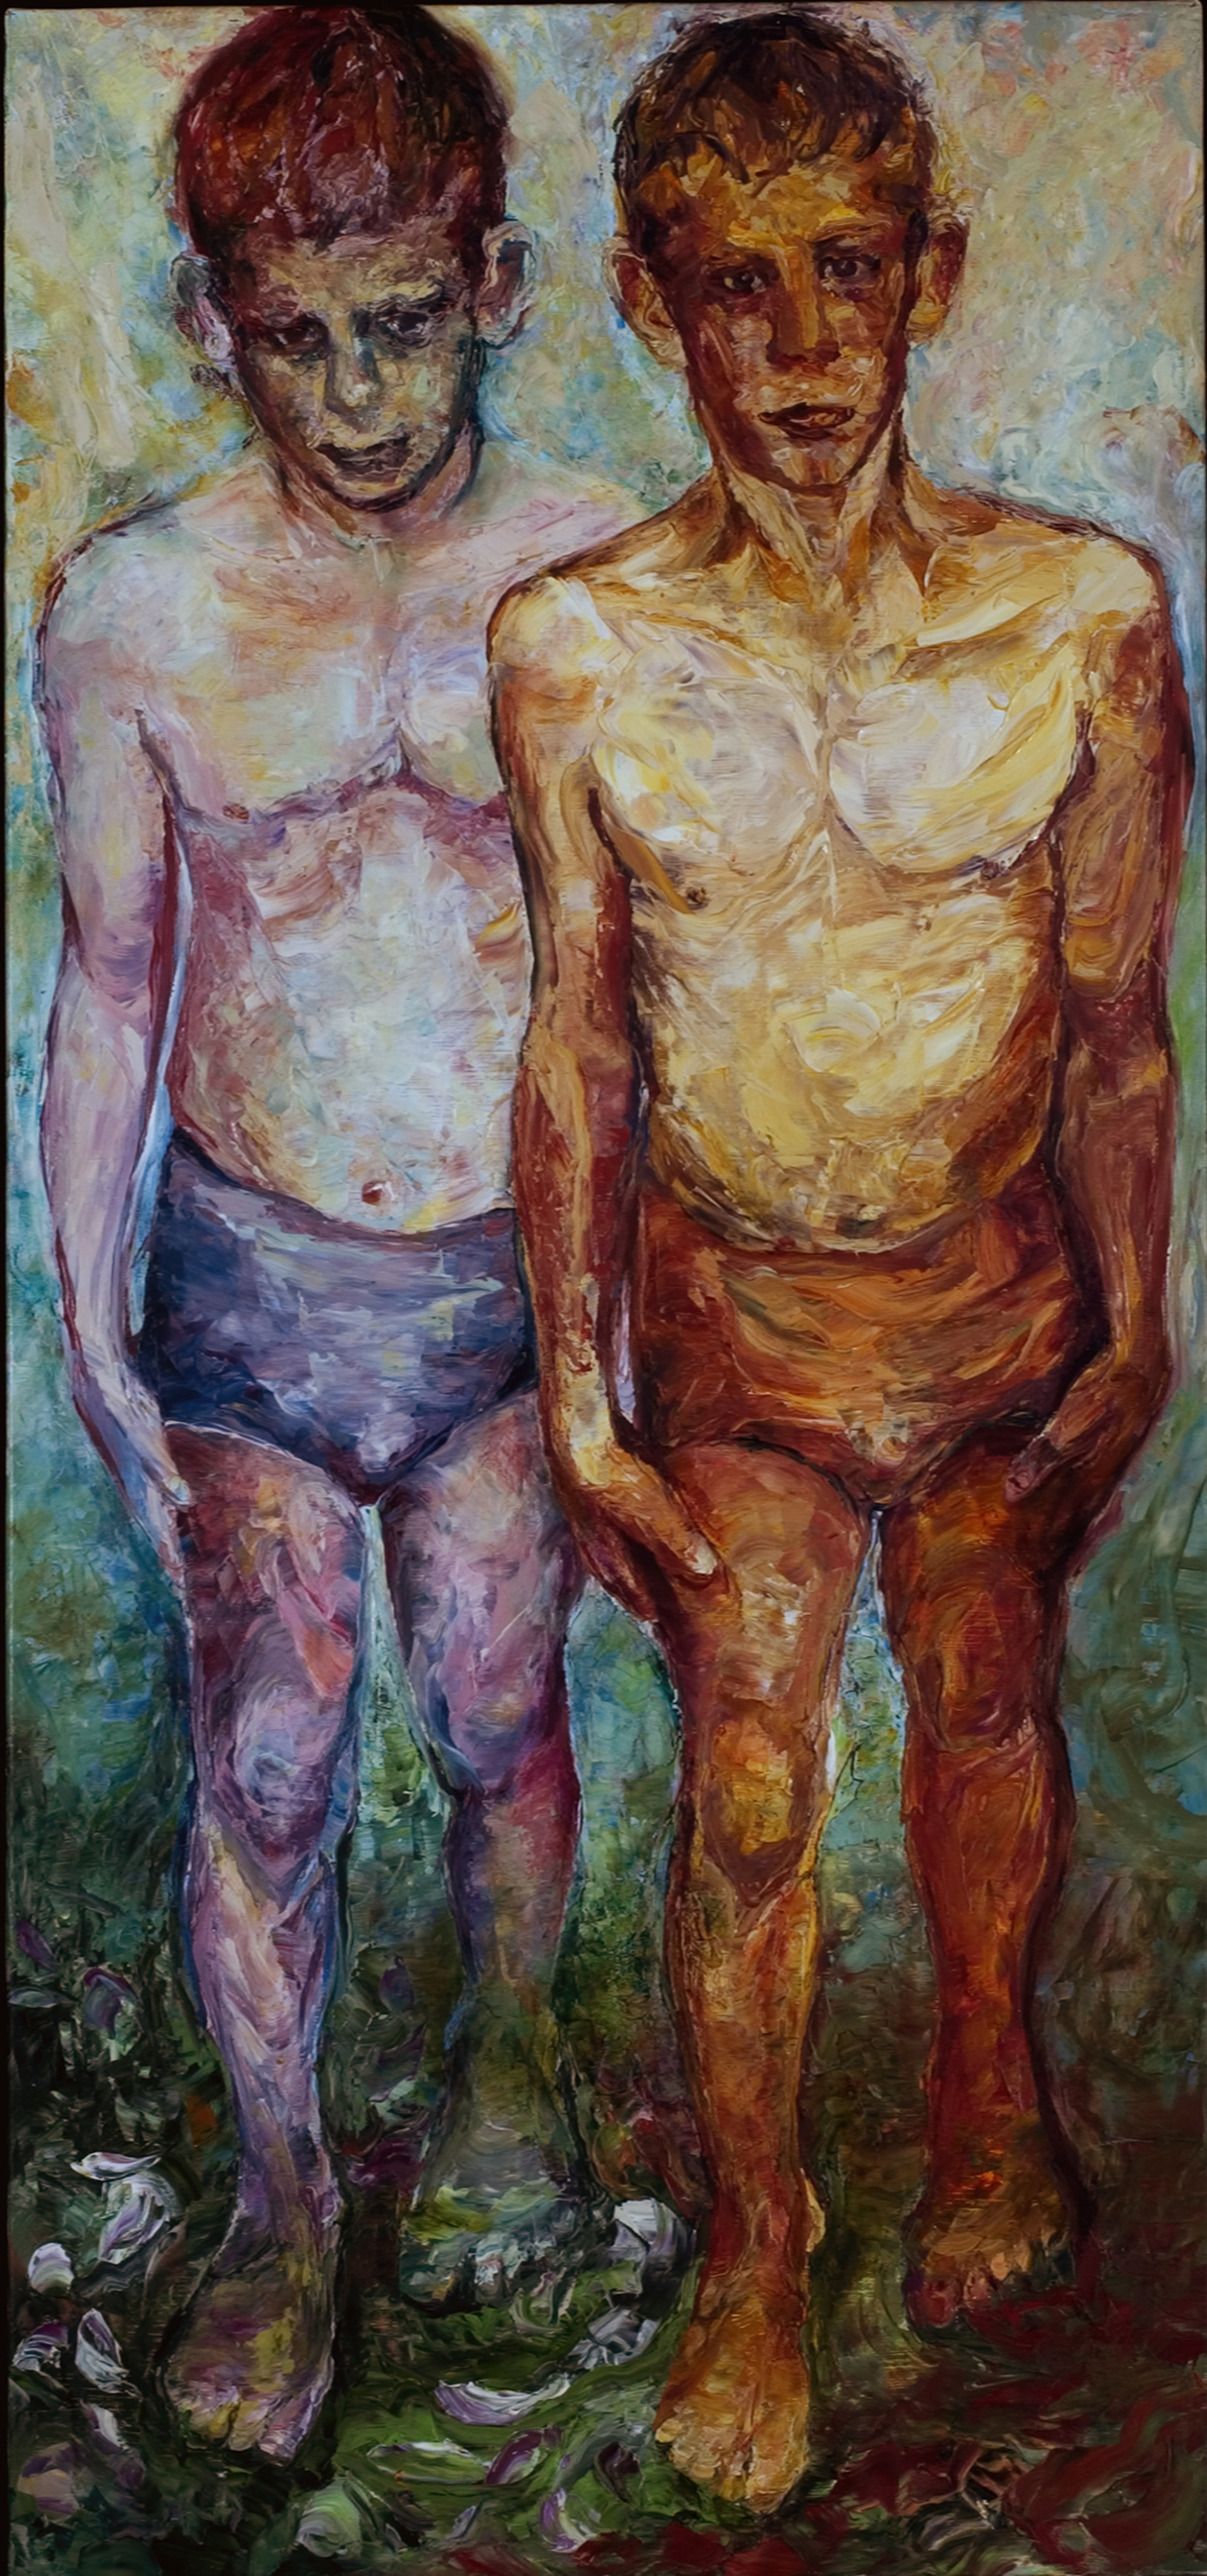 youth identity, psychological conflict, kouros, oil, expressive,